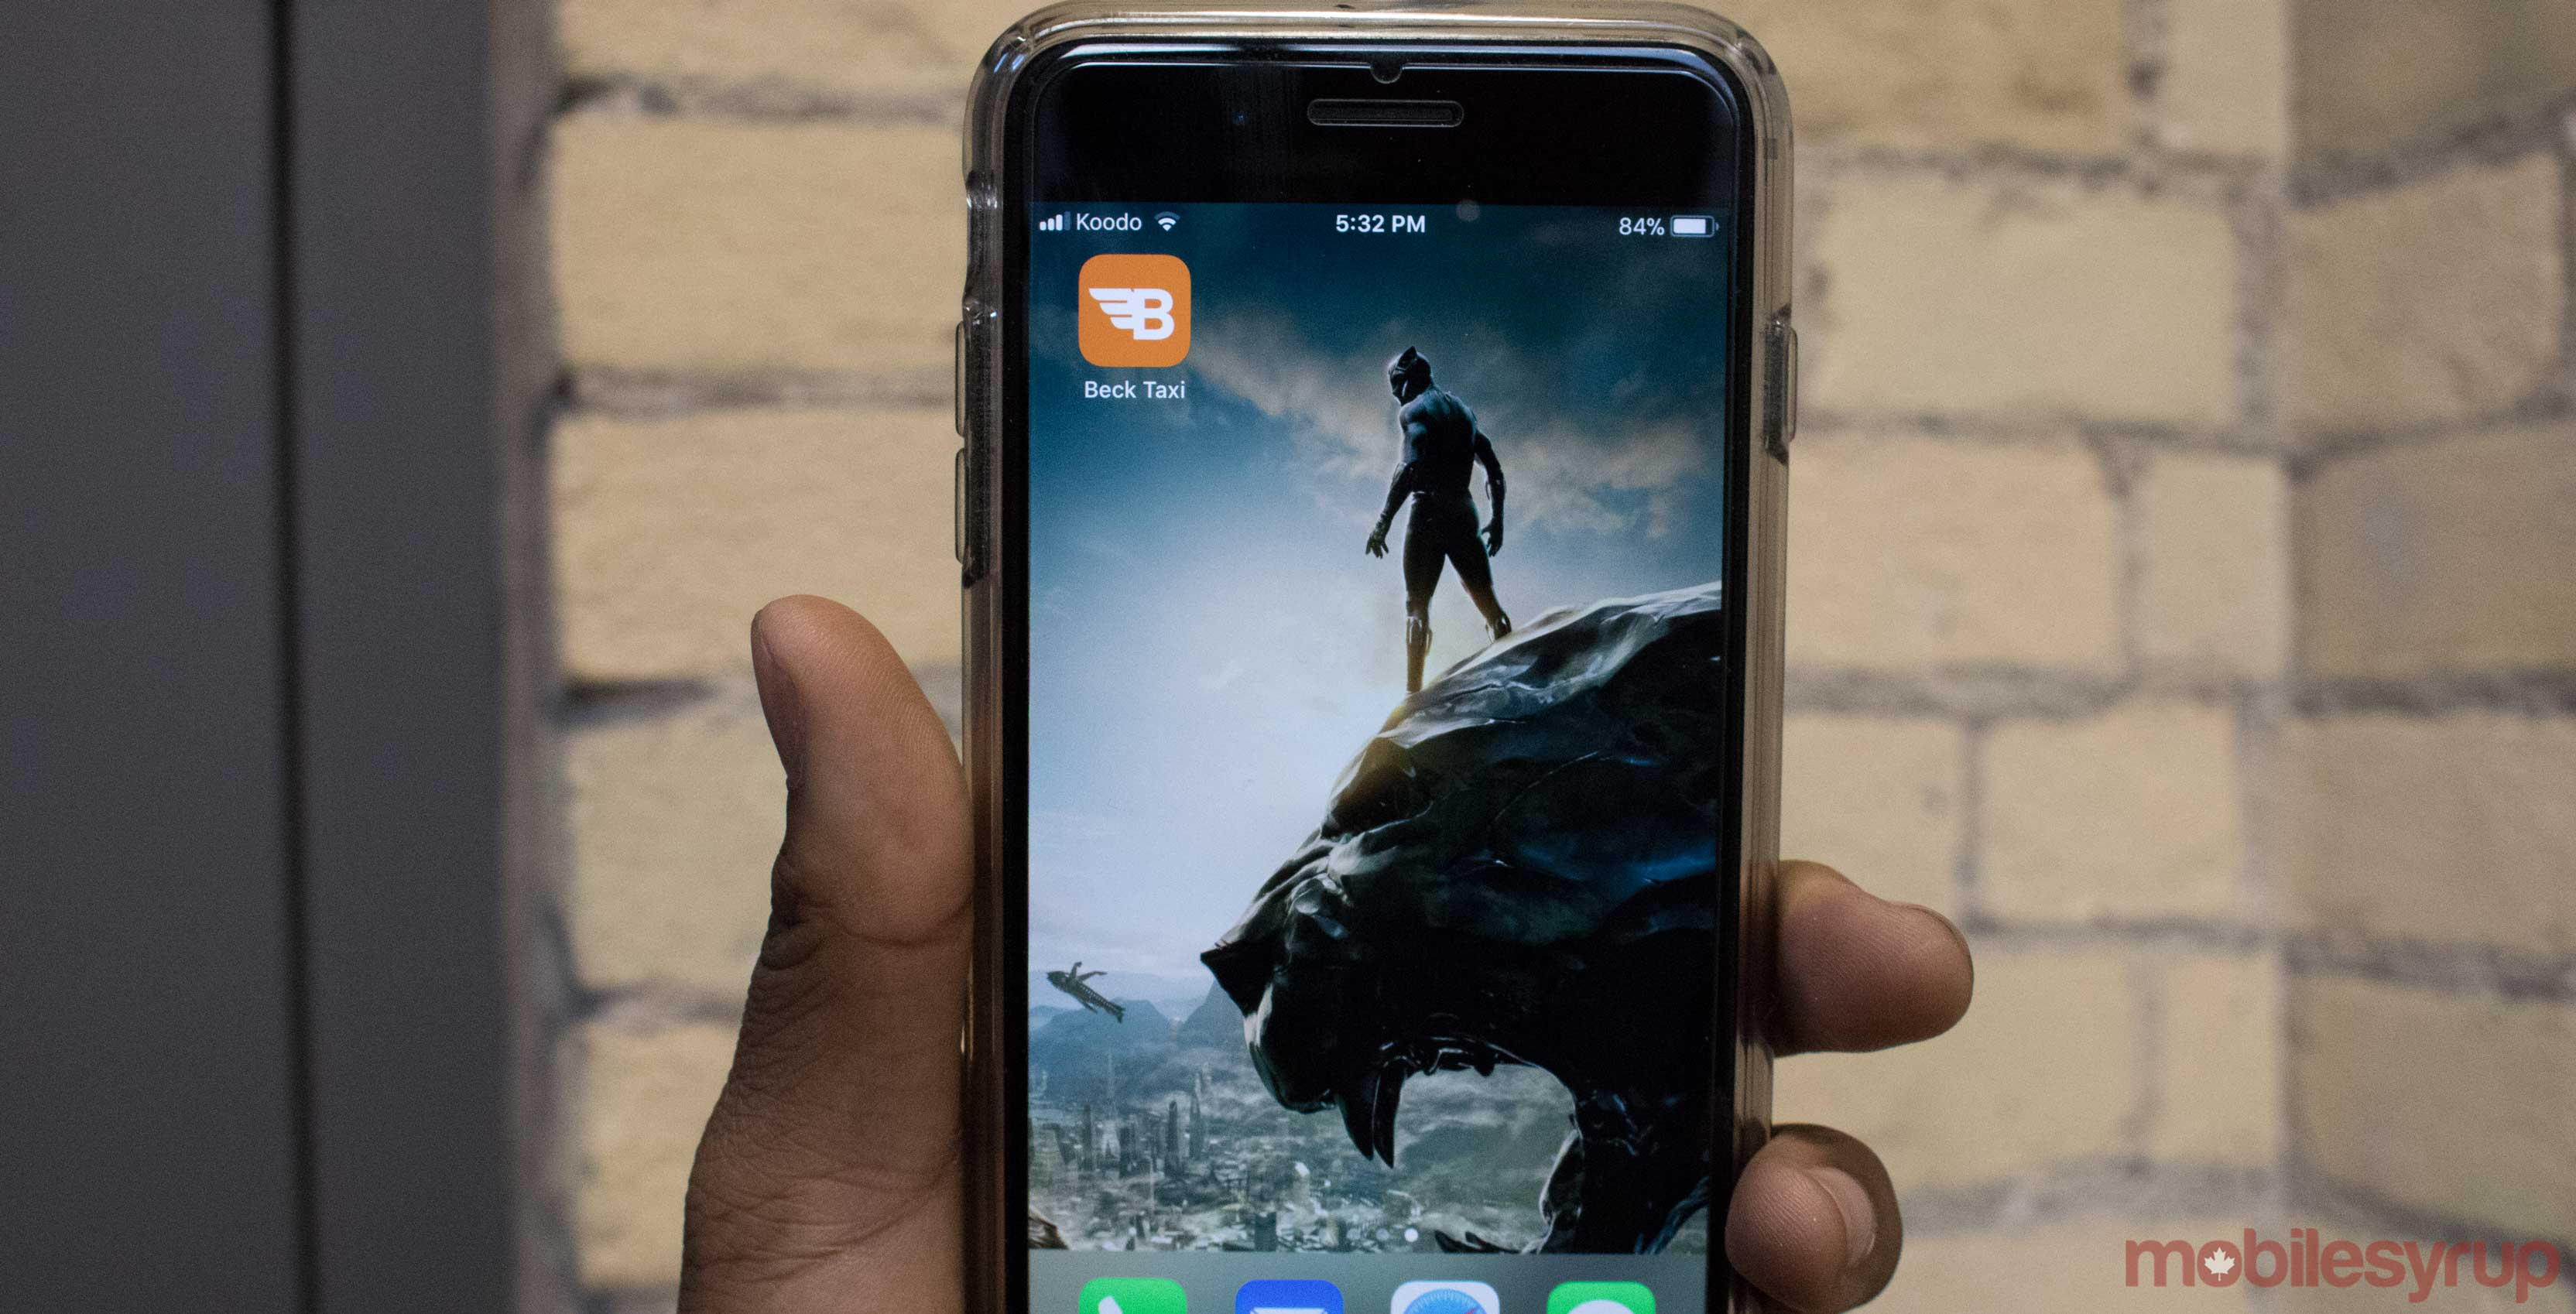 Beck Taxi app on iPhone